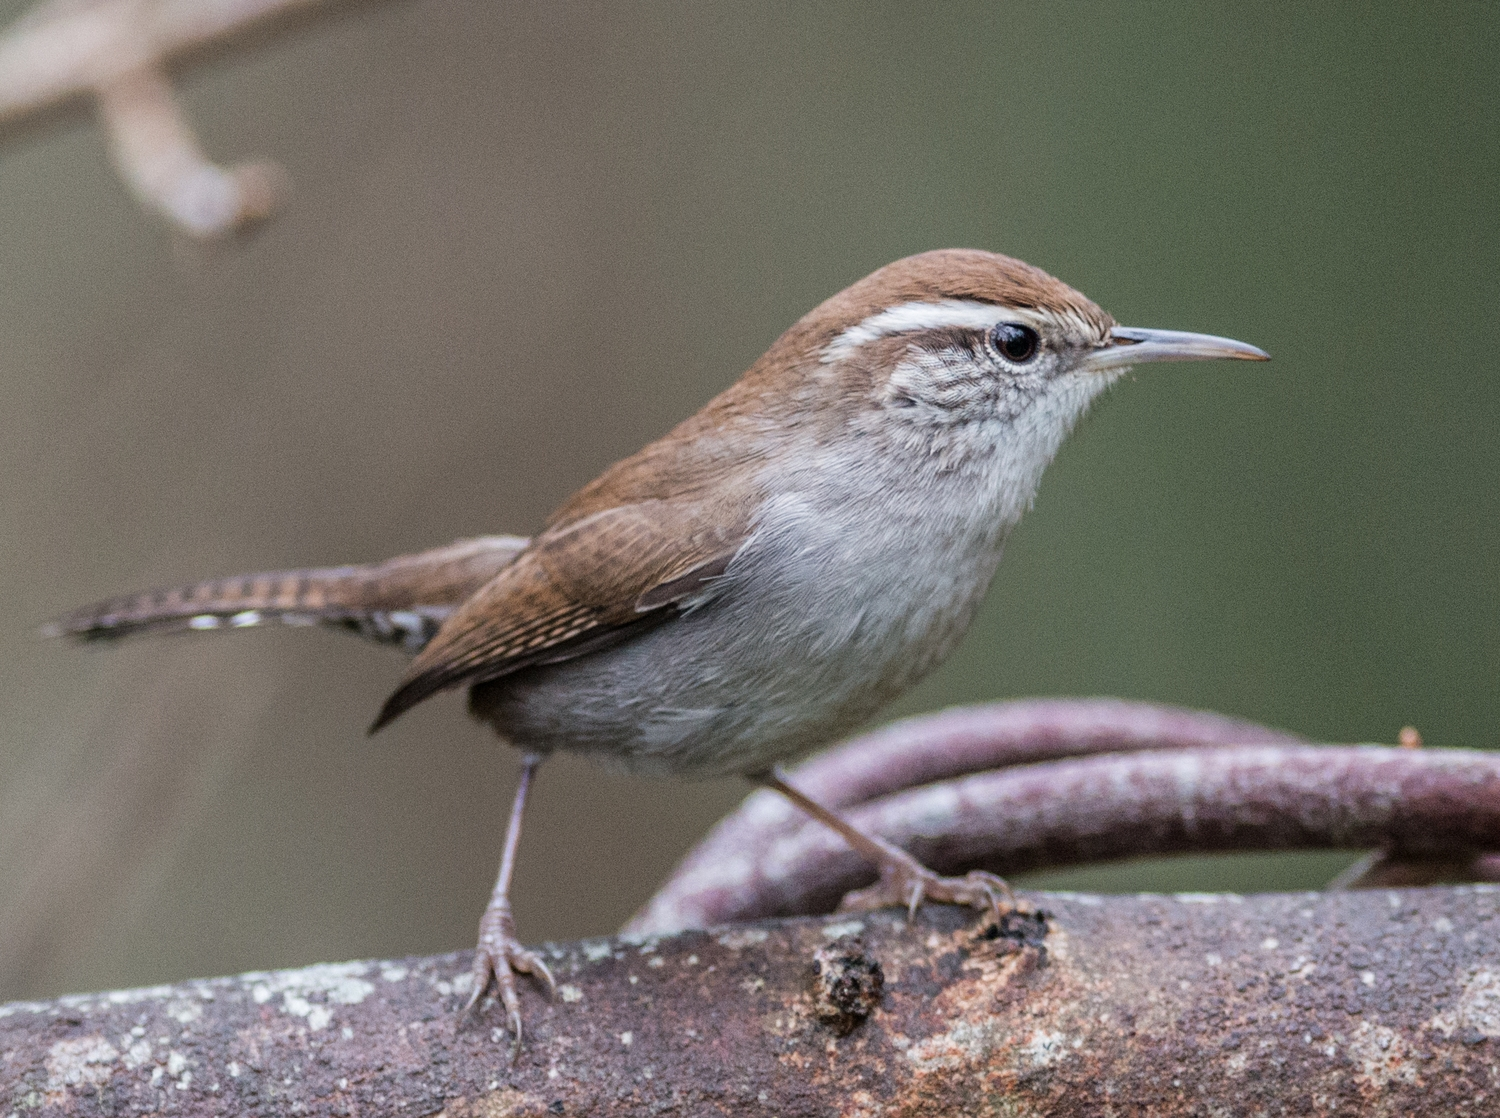 Bewick's Wren (Thryomanes bewickii)  Taken: 12-5-14 10:04 at Natural Bridges SB  1/500, ISO1600, f/2.8, 300mm